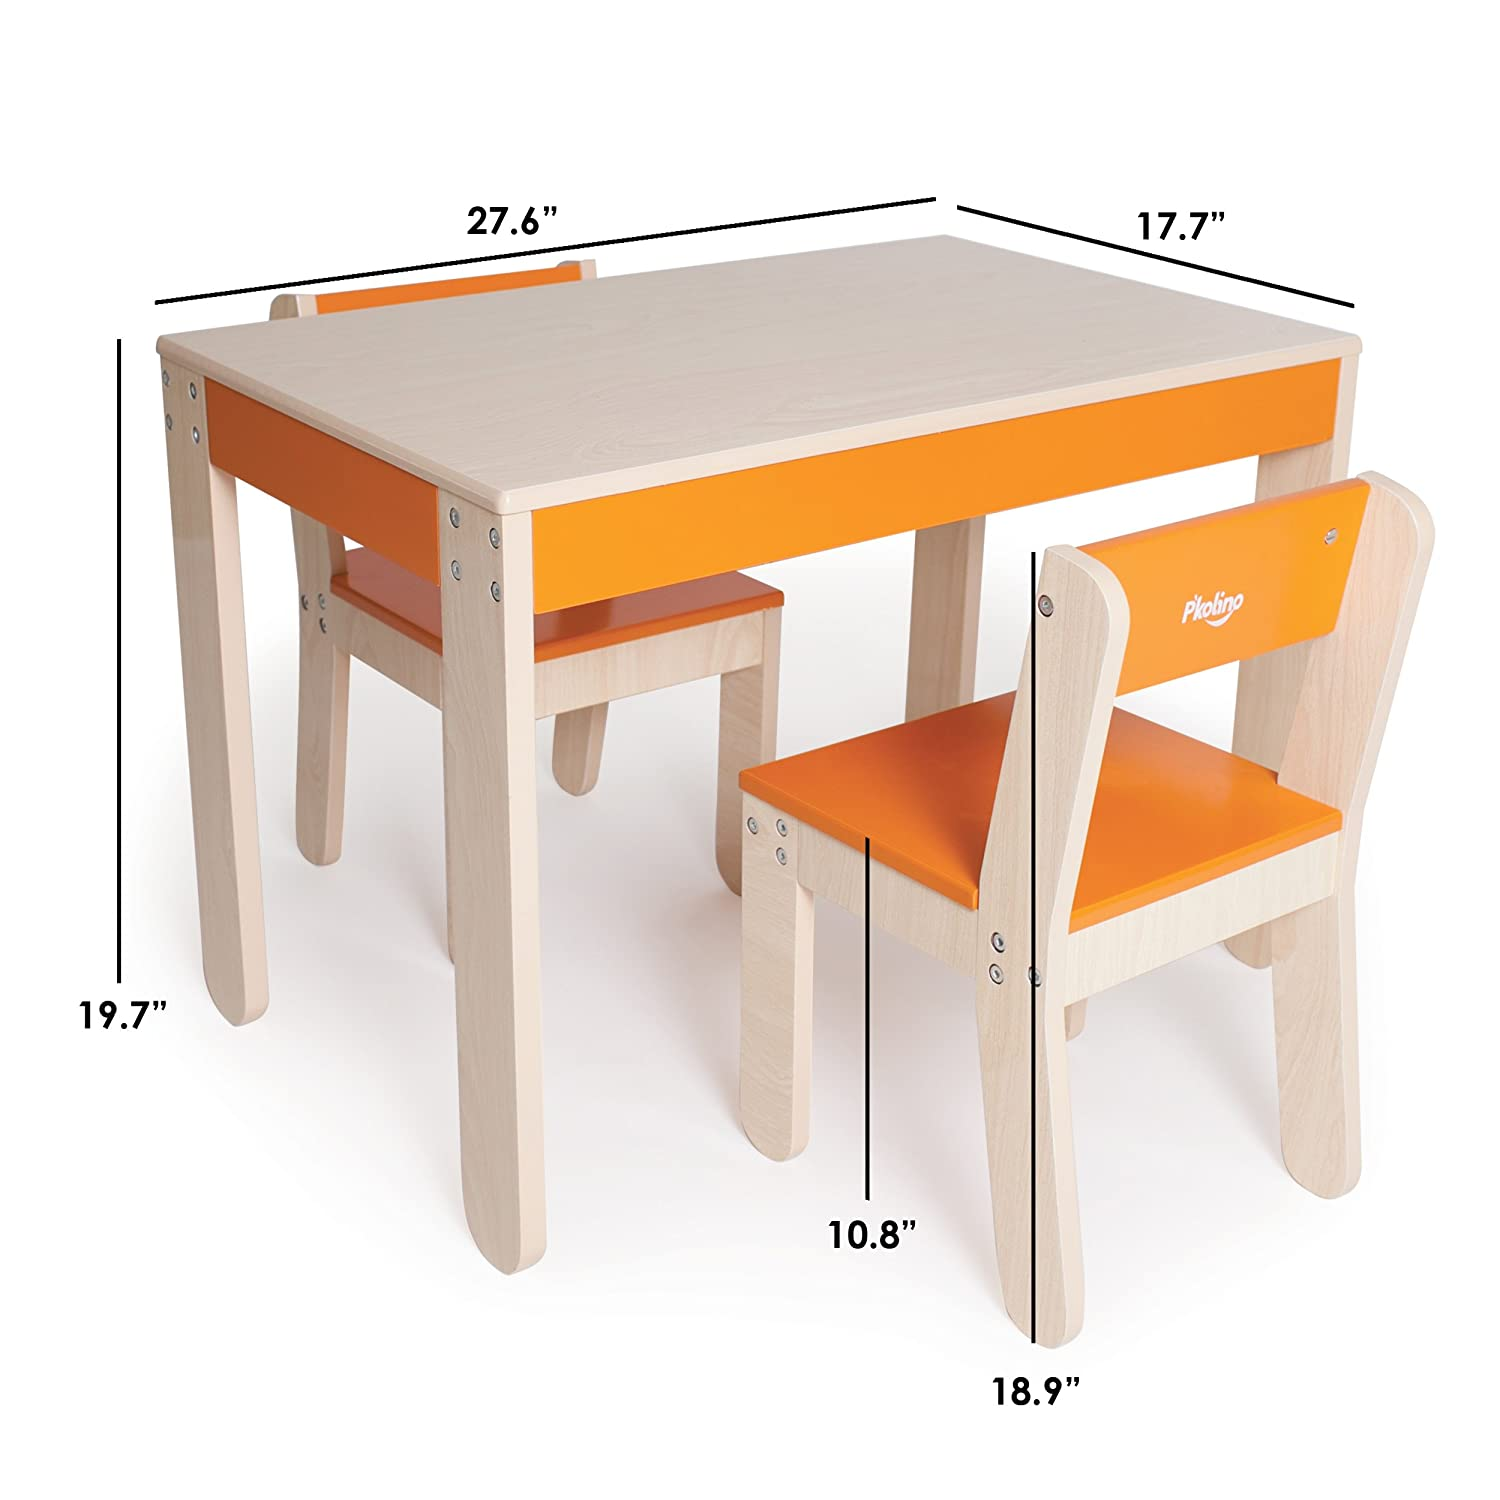 Amazon P kolino Little e s Table and Chairs Orange Baby